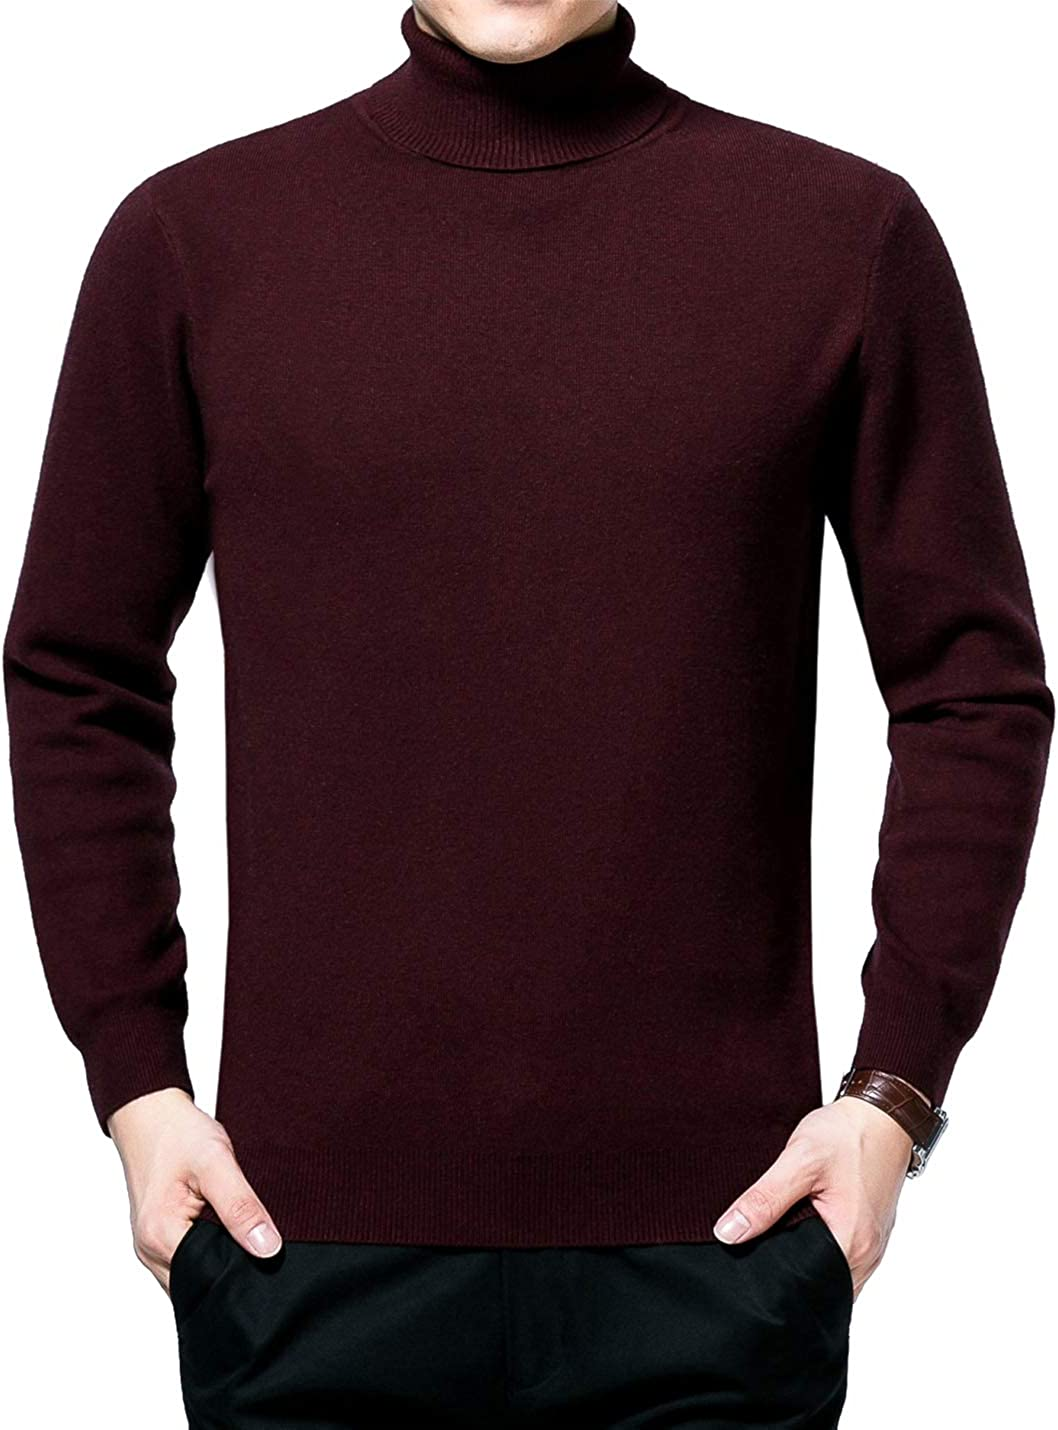 Gihuo Men's Fitted Solid Color Turtleneck Knit Pullover Sweater